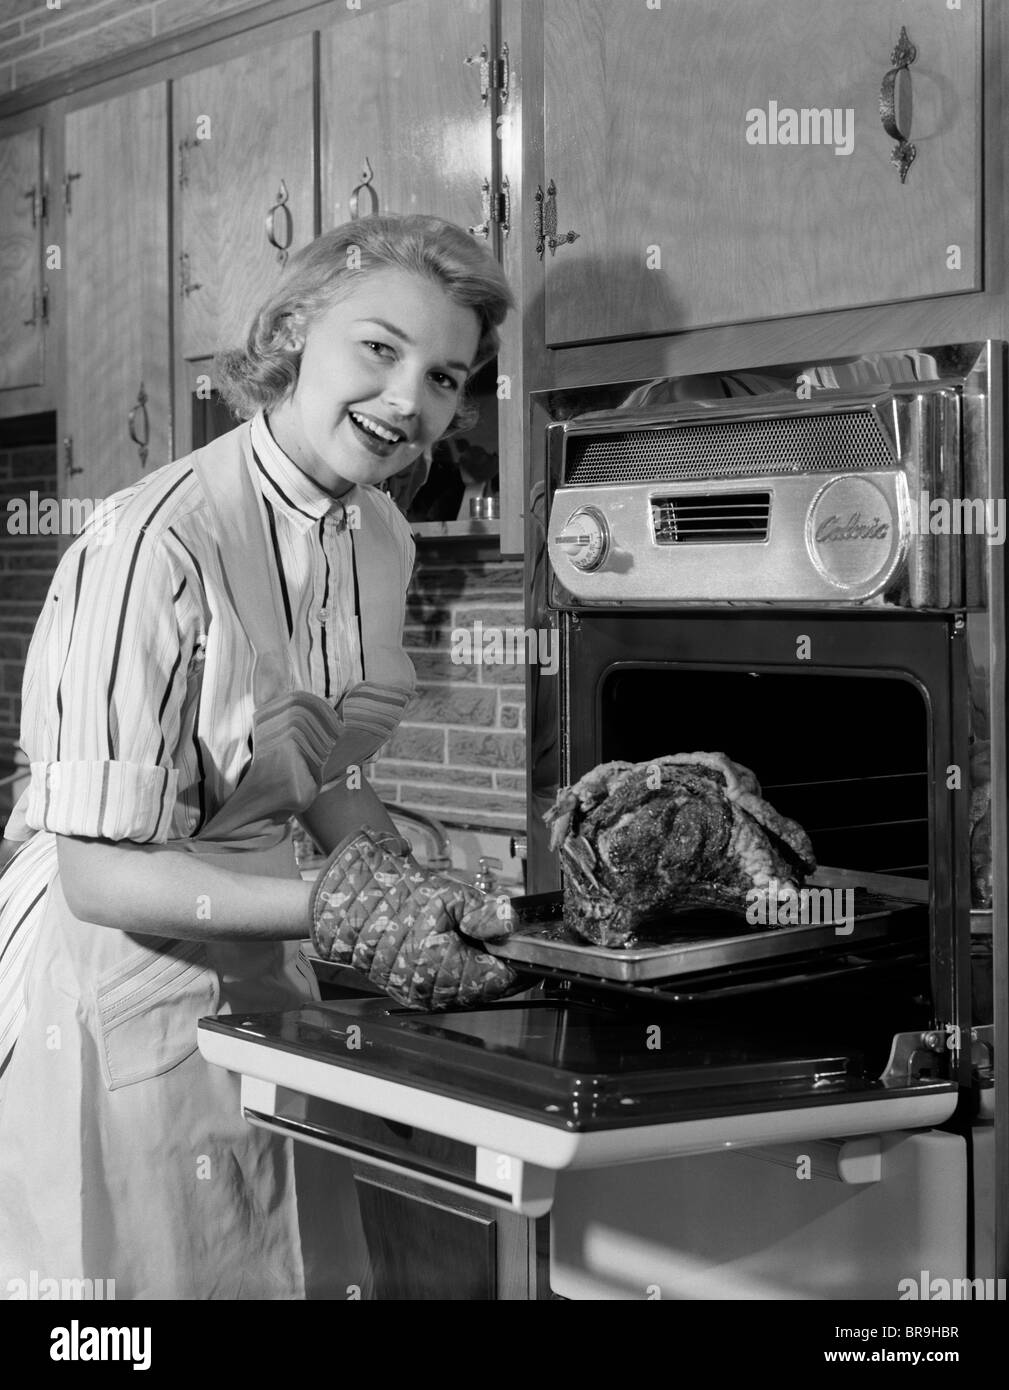 1950s Housewife Kitchen Stock Photos Amp 1950s Housewife